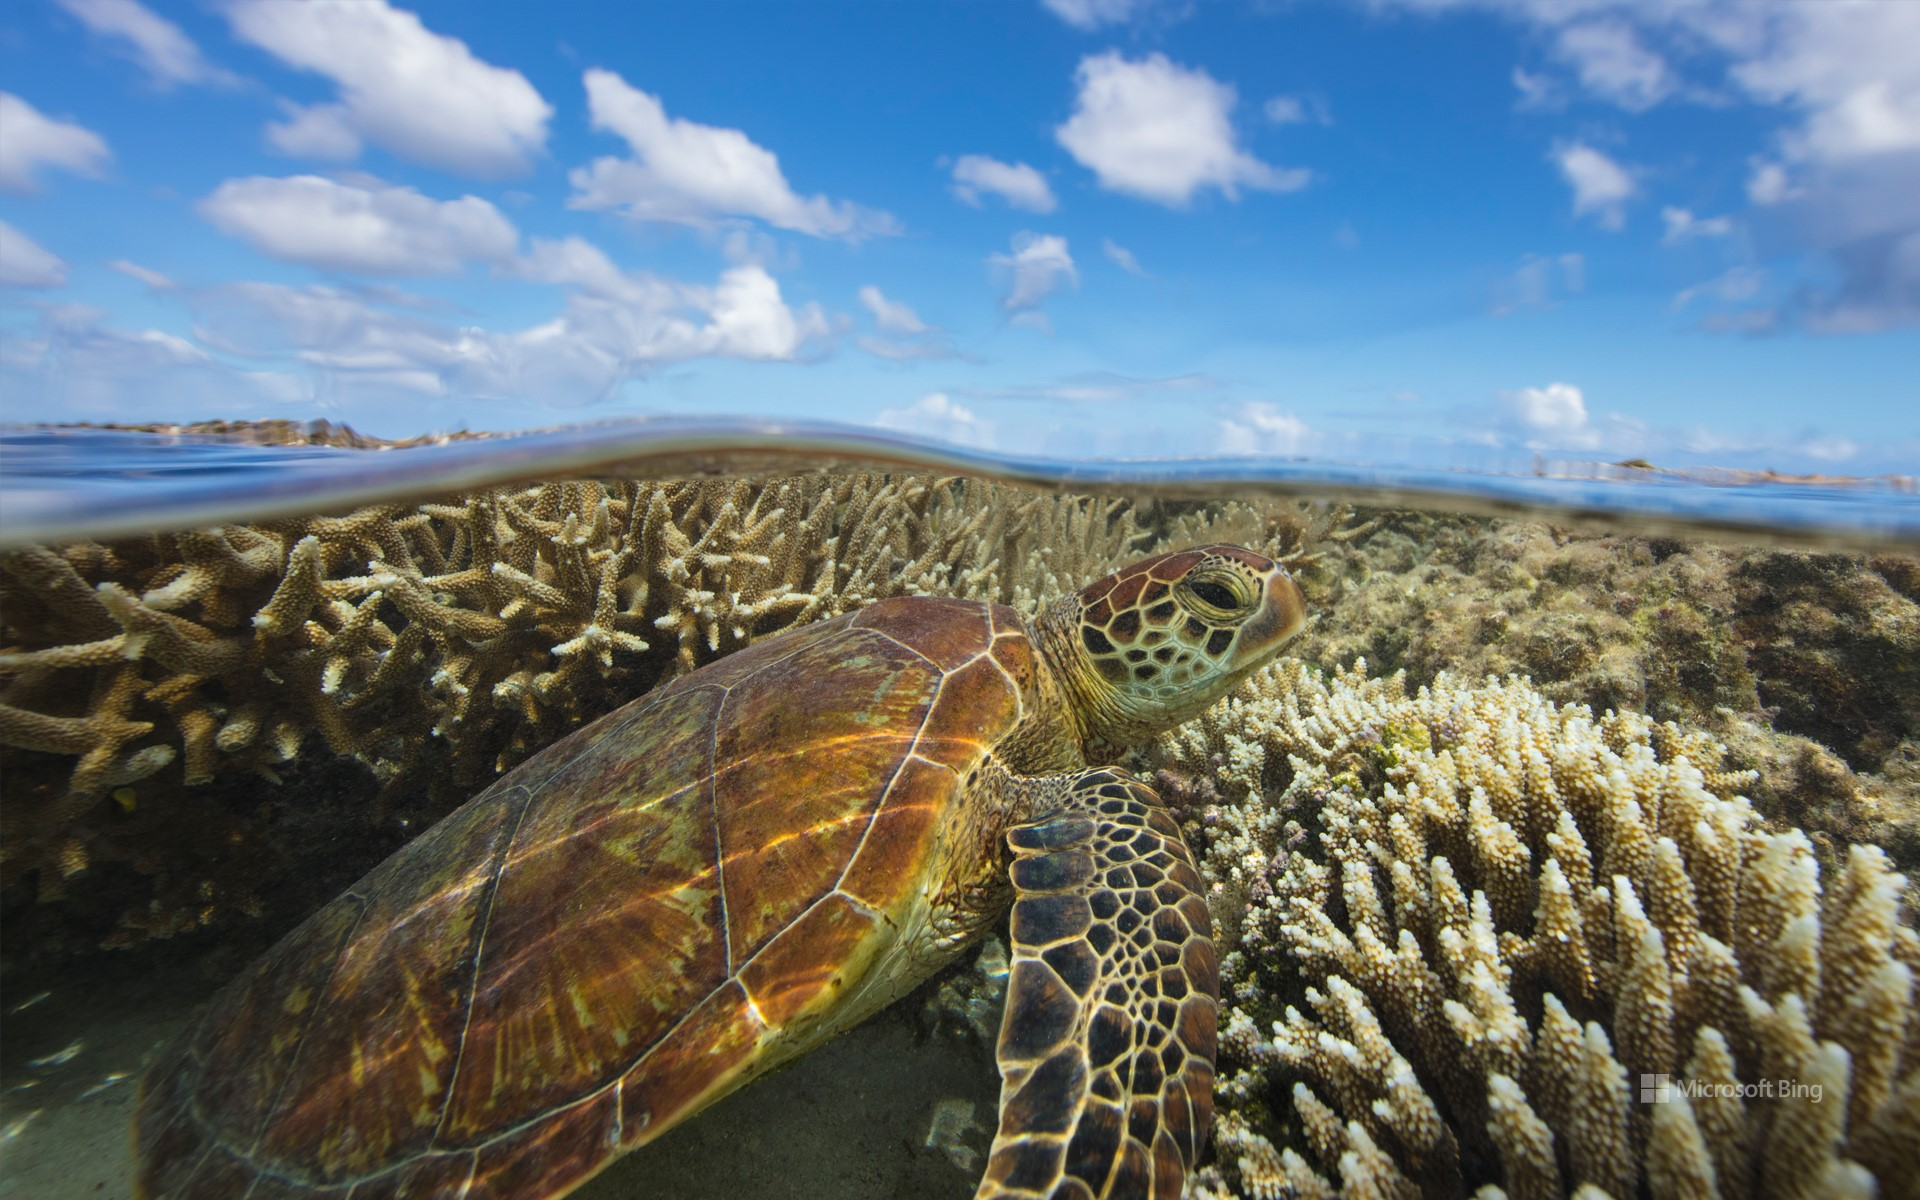 Green turtle swimming over a coral reef, Lady Elliot Island, Queensland